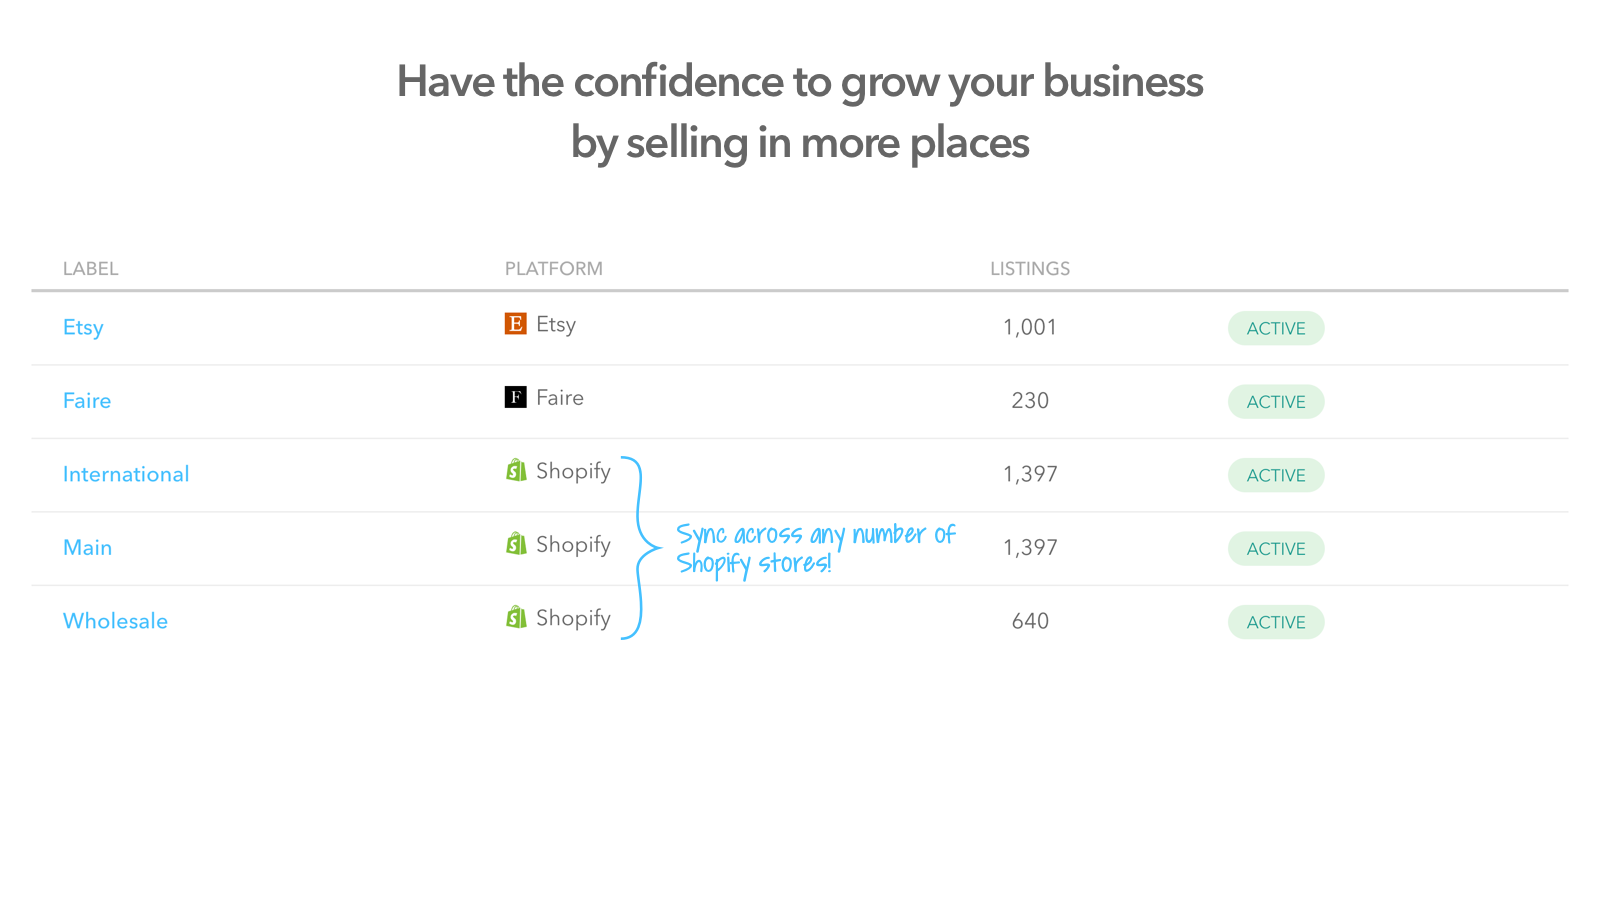 Have the confidence to grow your business by selling everywhere